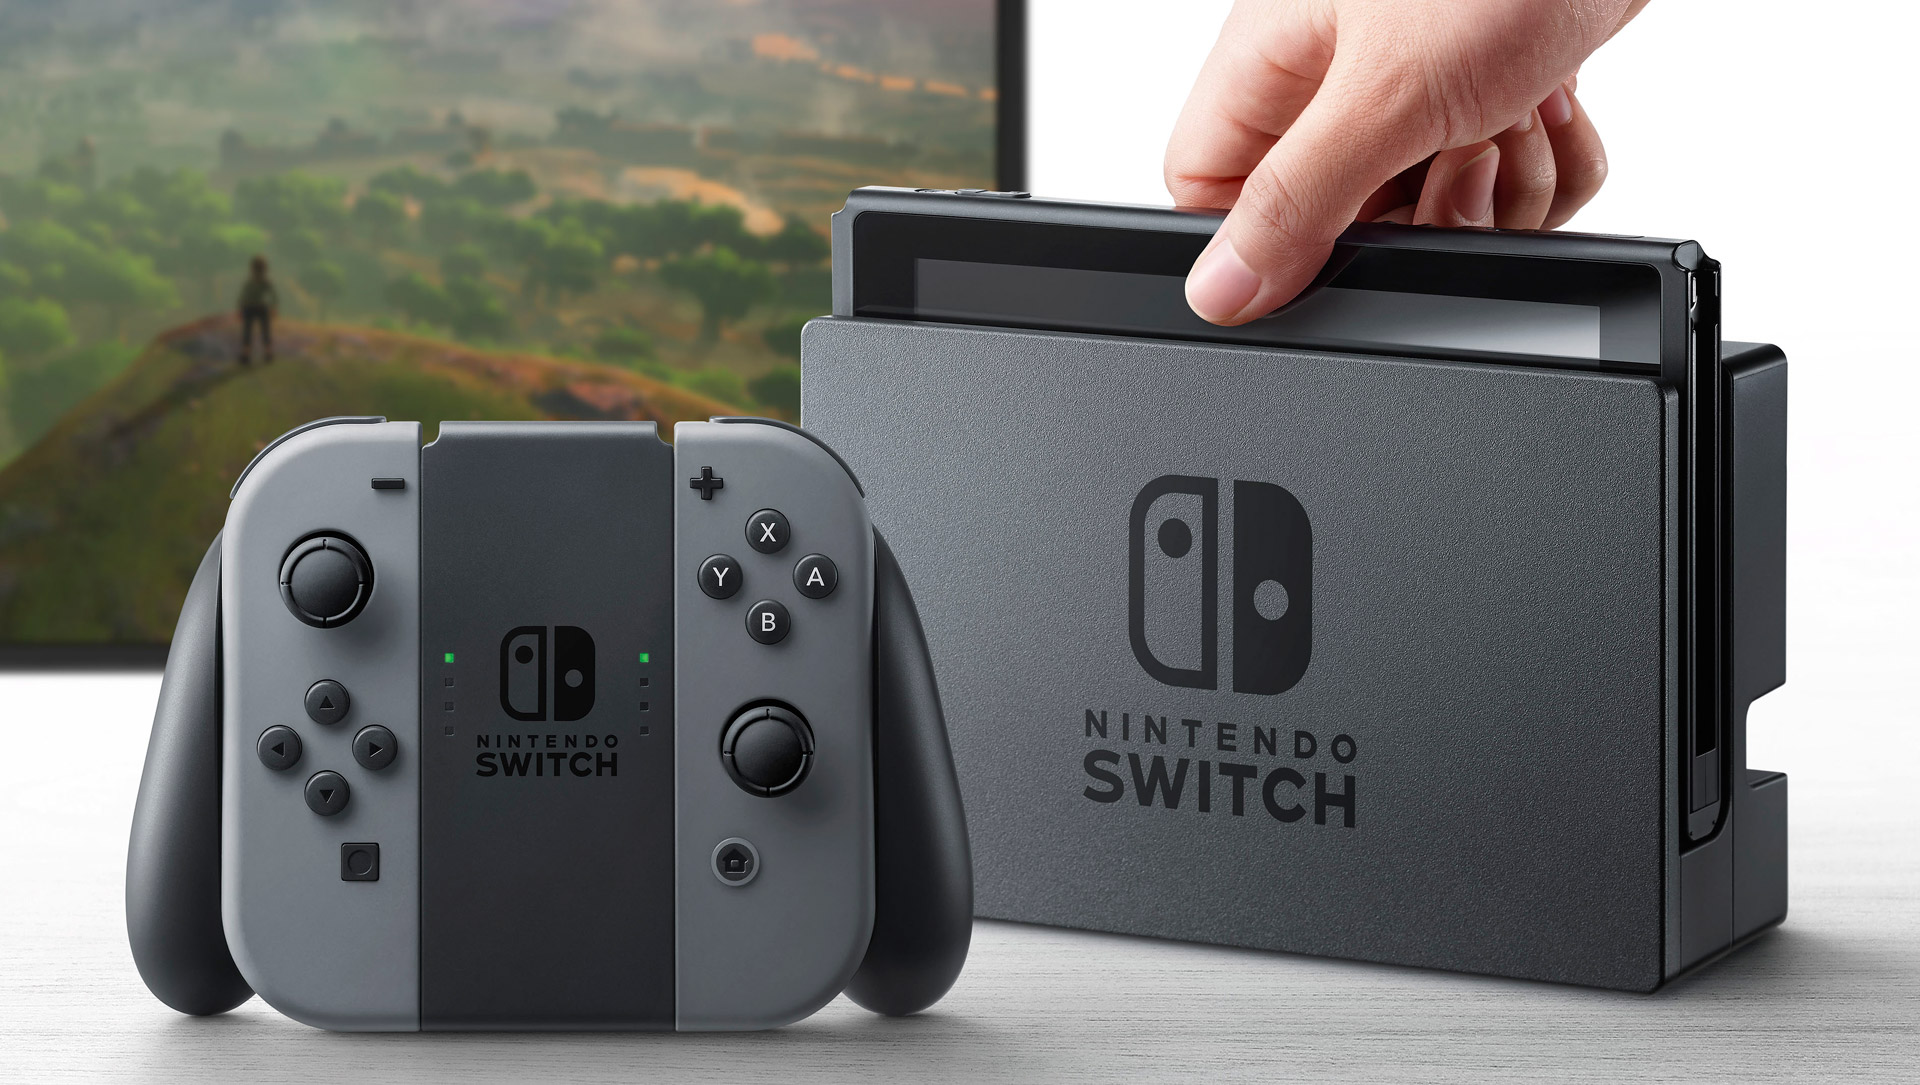 Nintendo Switch Product Problems Emerge With Nintendo Switch Owners 'Not Happy'